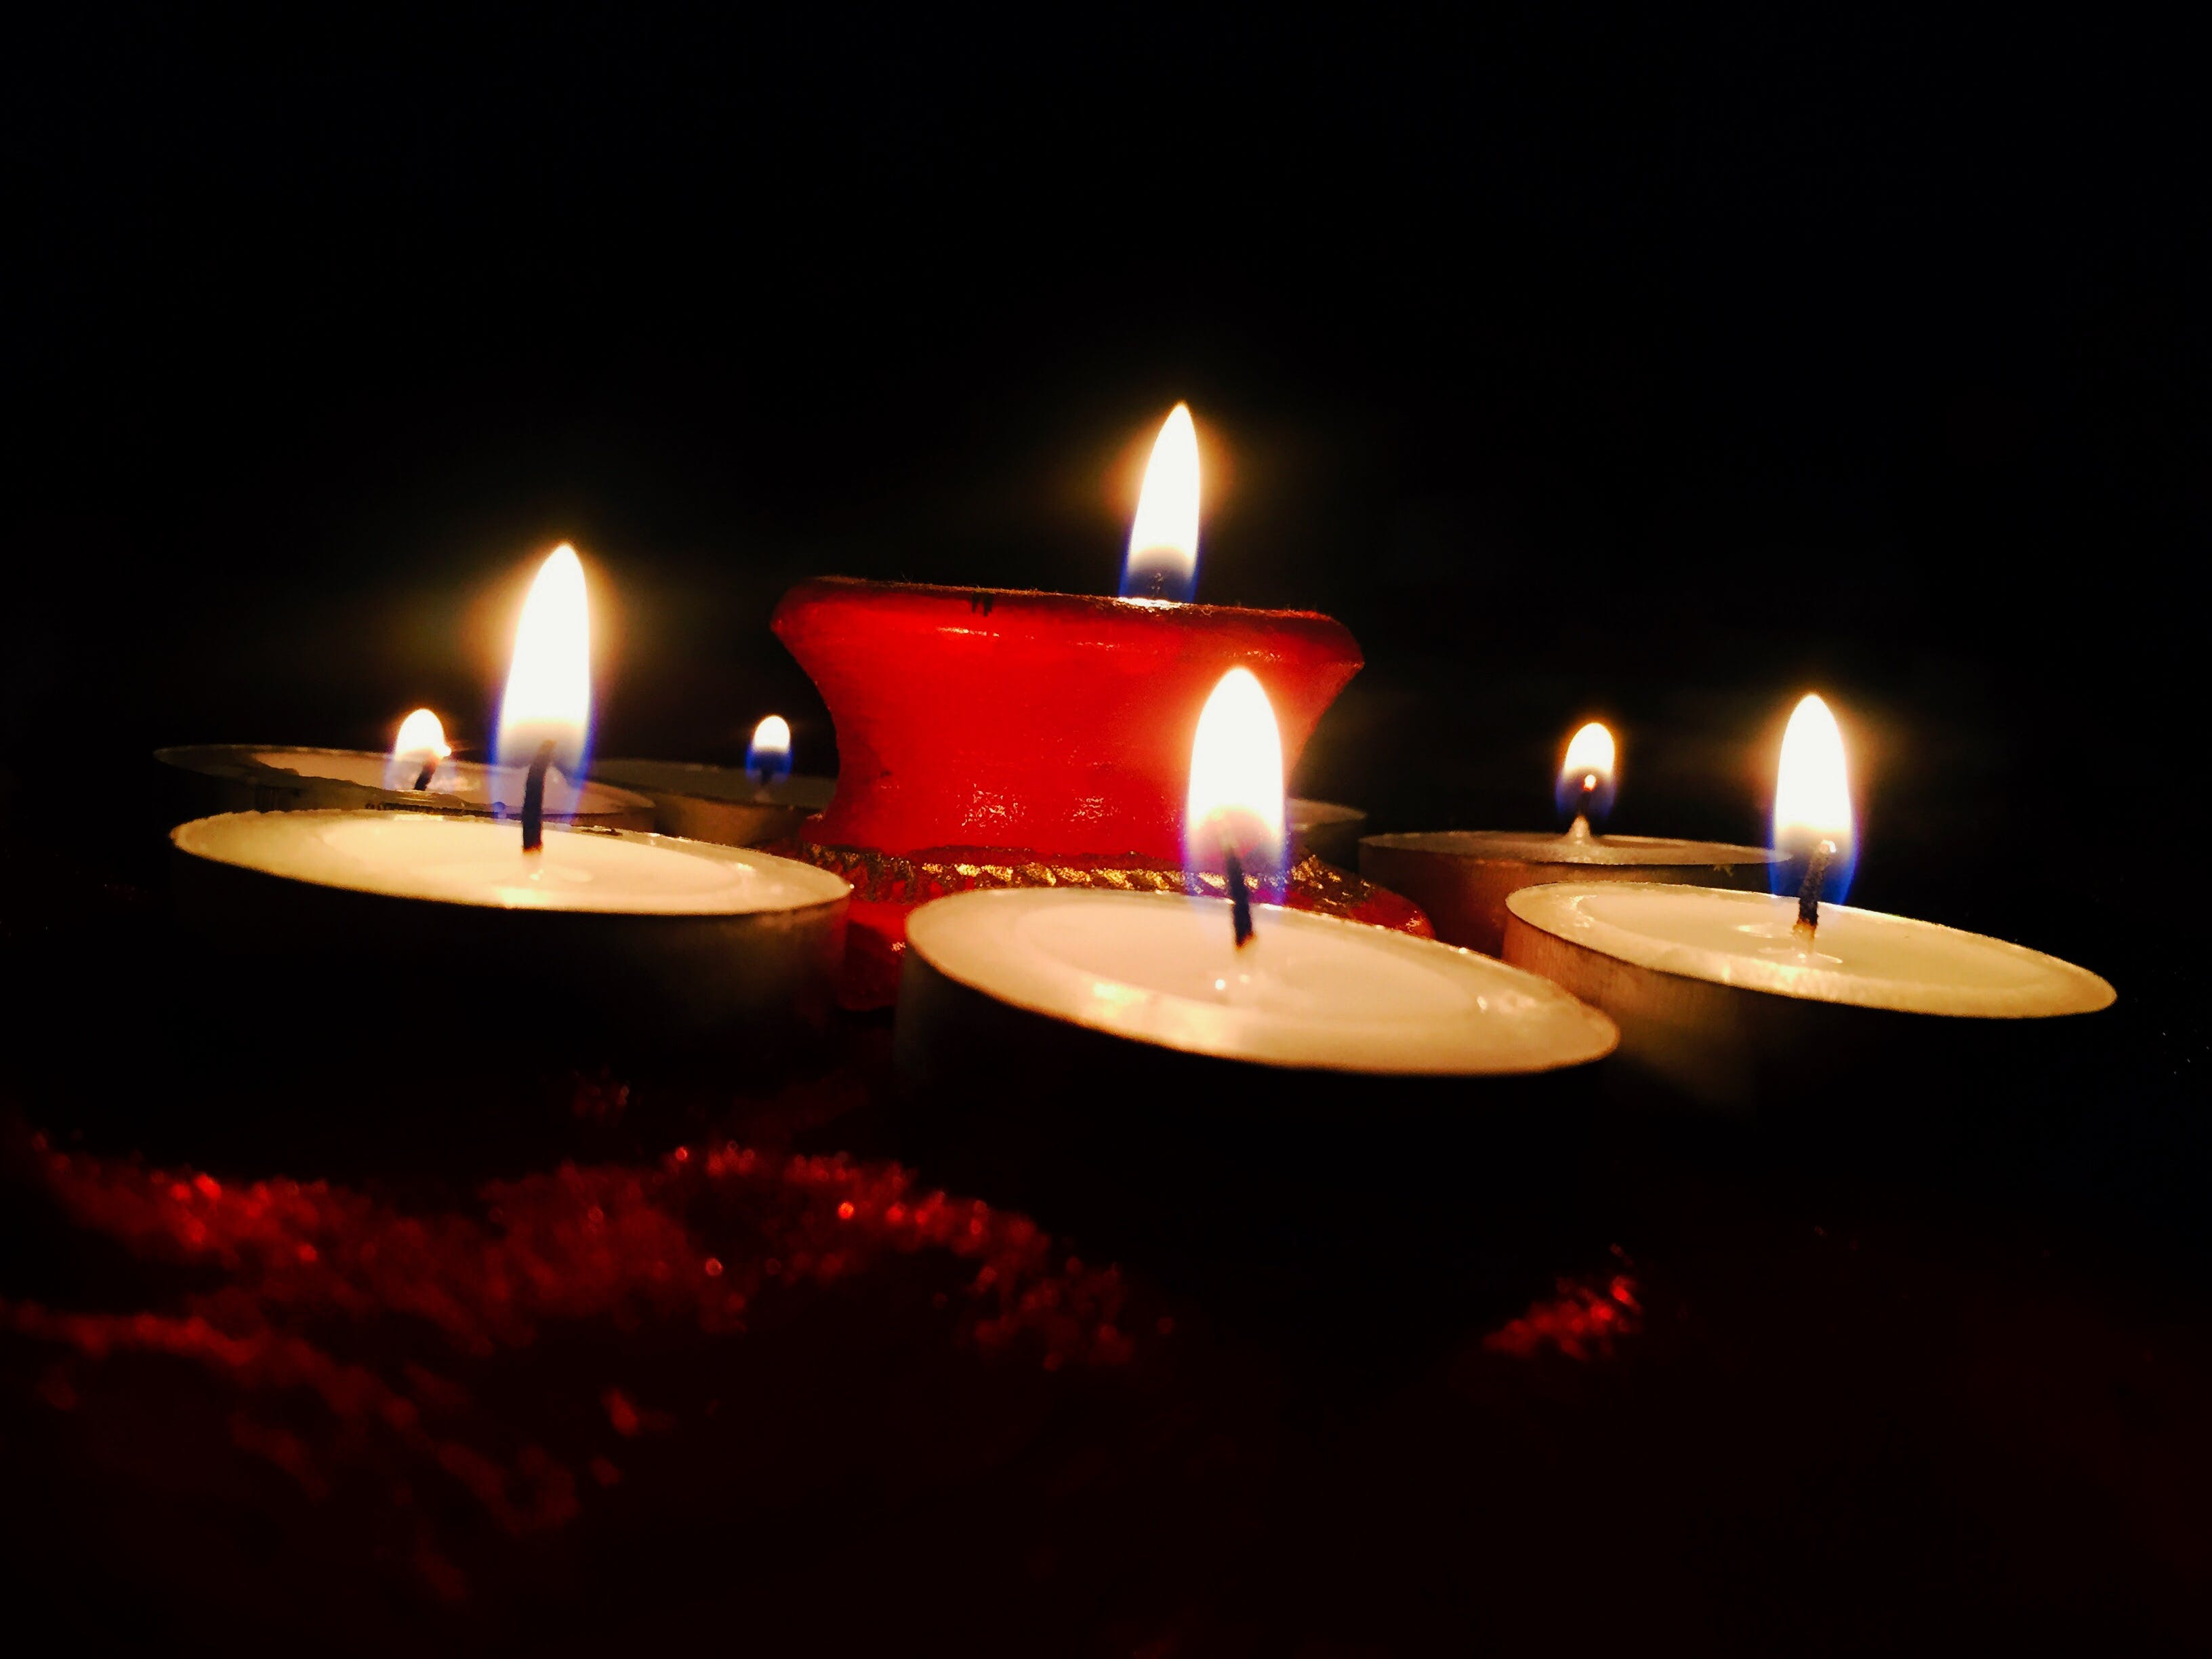 Free stock photo of Candlelights, desktop backgrounds, HD wallpaper, low angle photography